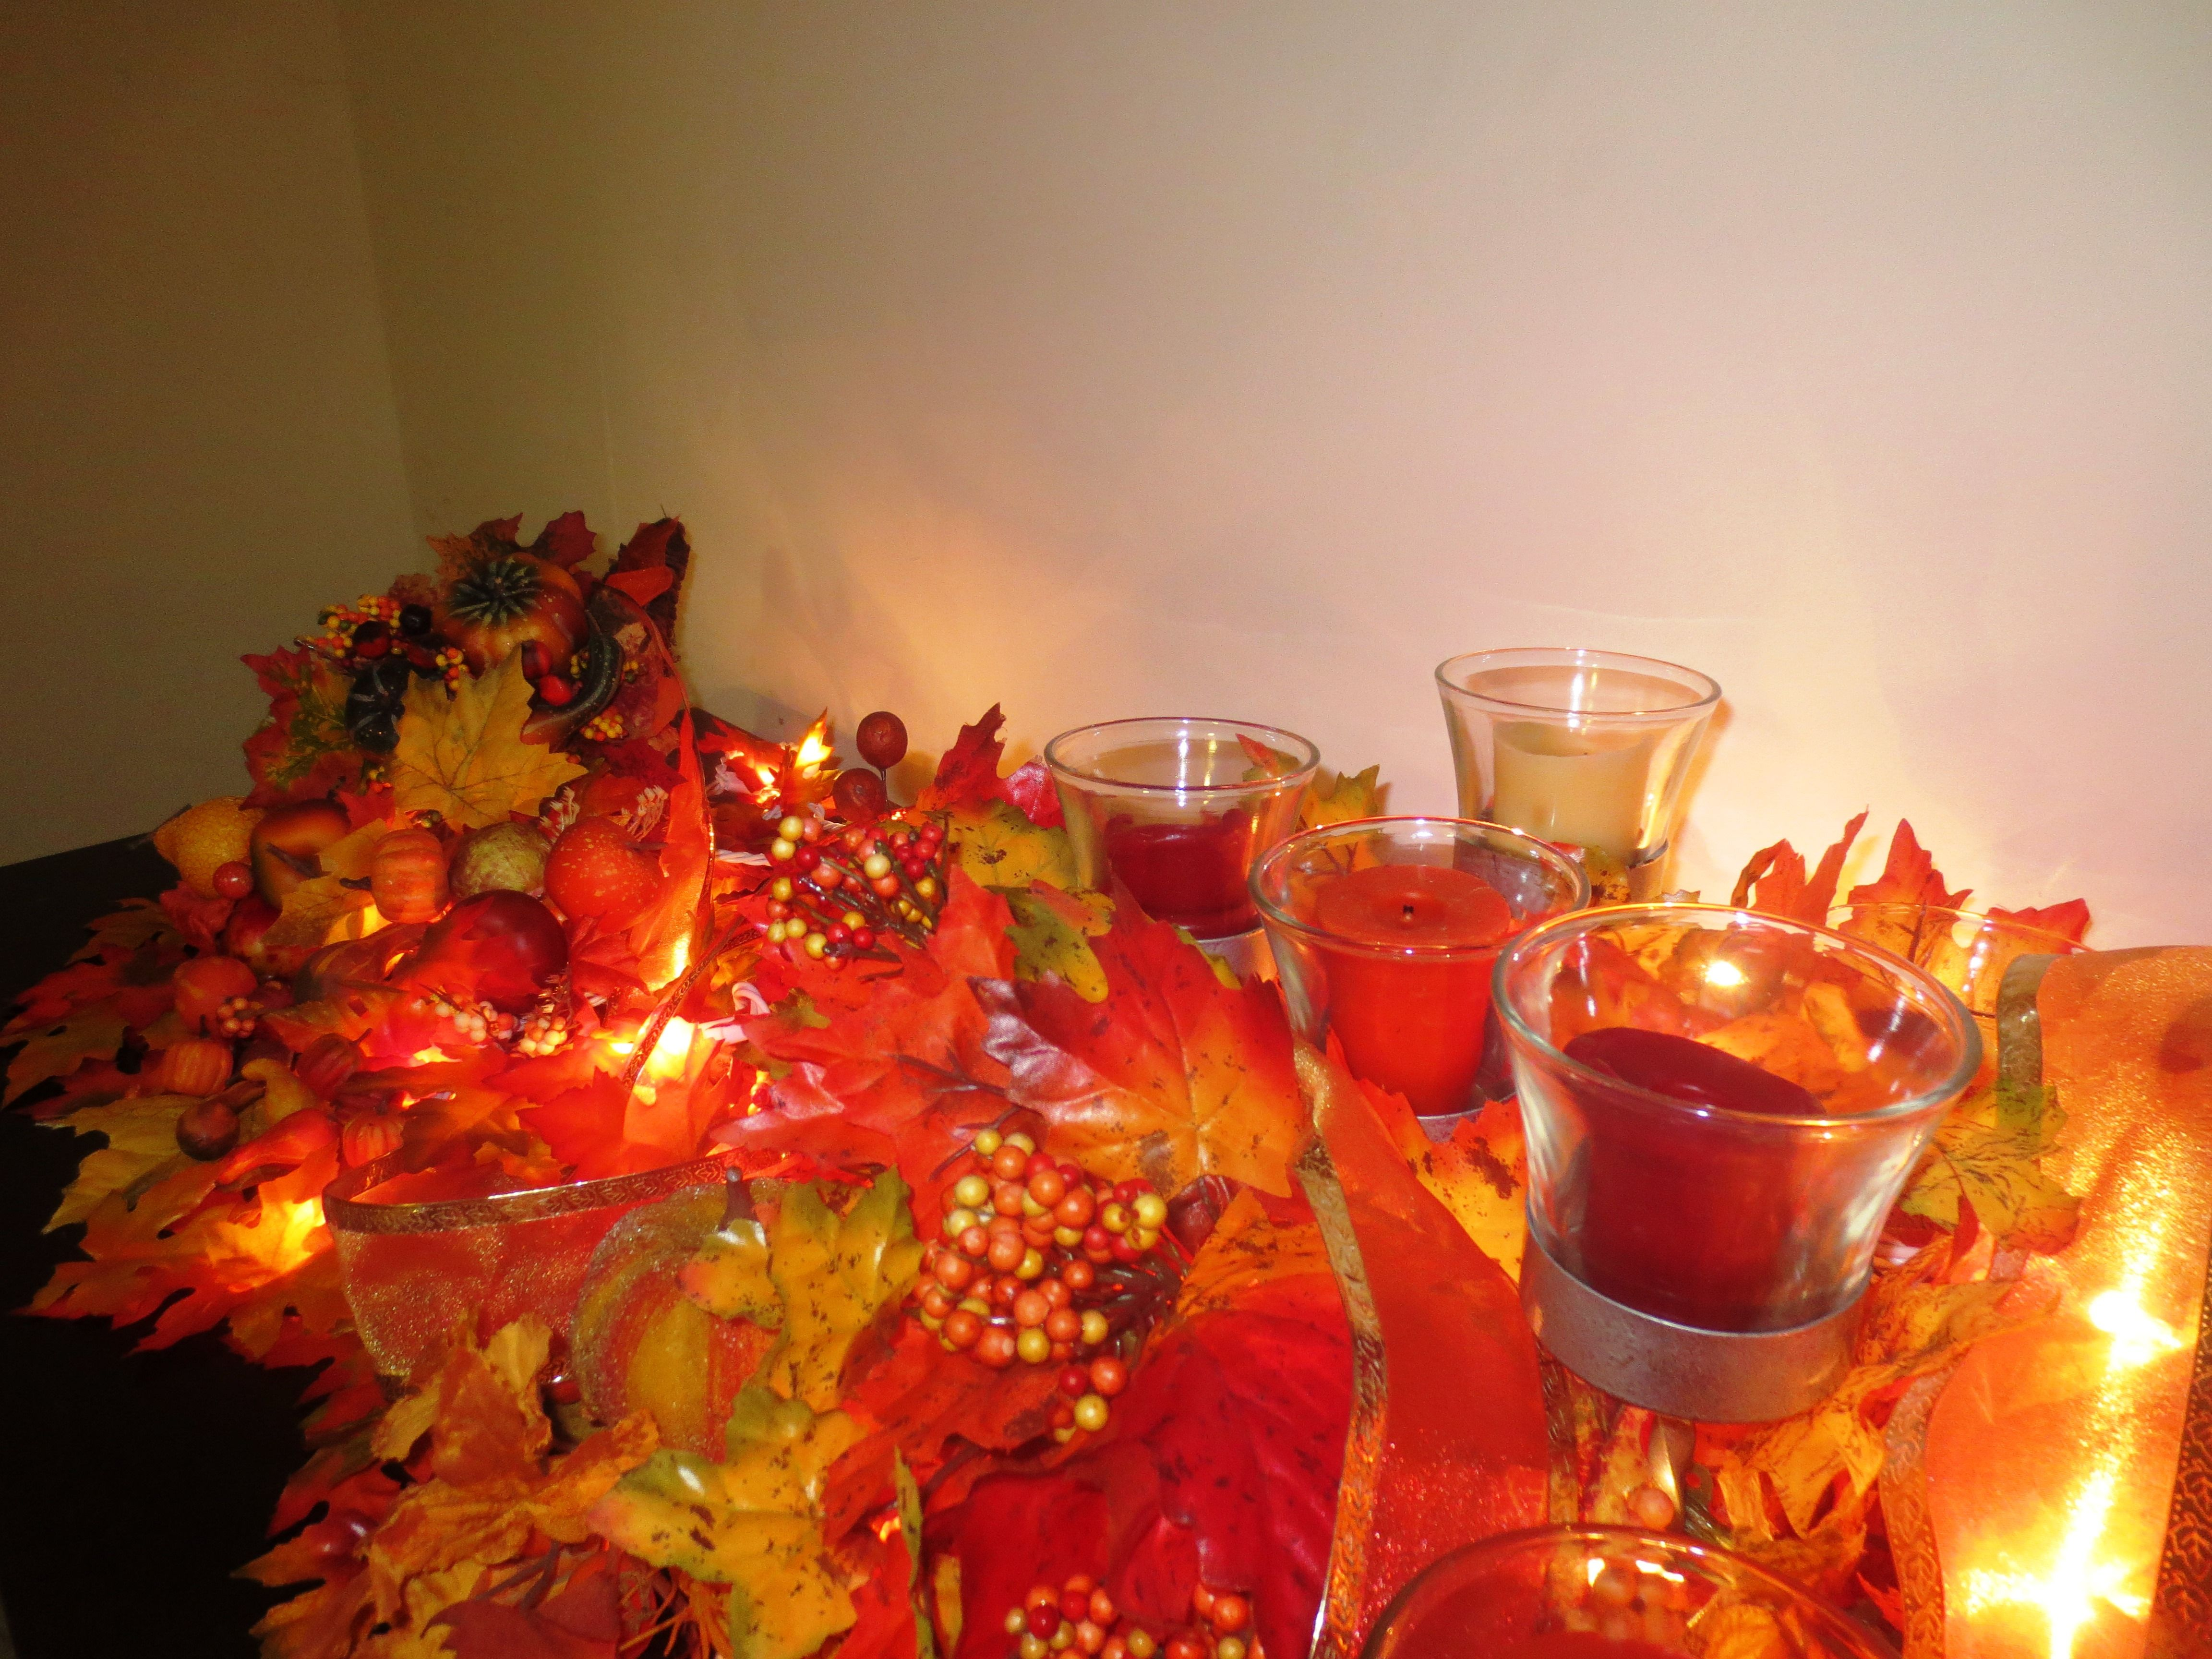 Thanksgiving - The traditional symbol of this holiday is the cornucopia.  I placed one with some silk leaves and autumn fruit and vegetables.  The mass of leaves is several autumn swags with some orange organza ribbon.  The candle colors are orange, red, and yellow.  I just added things that reminds me a the plenitude of the season.